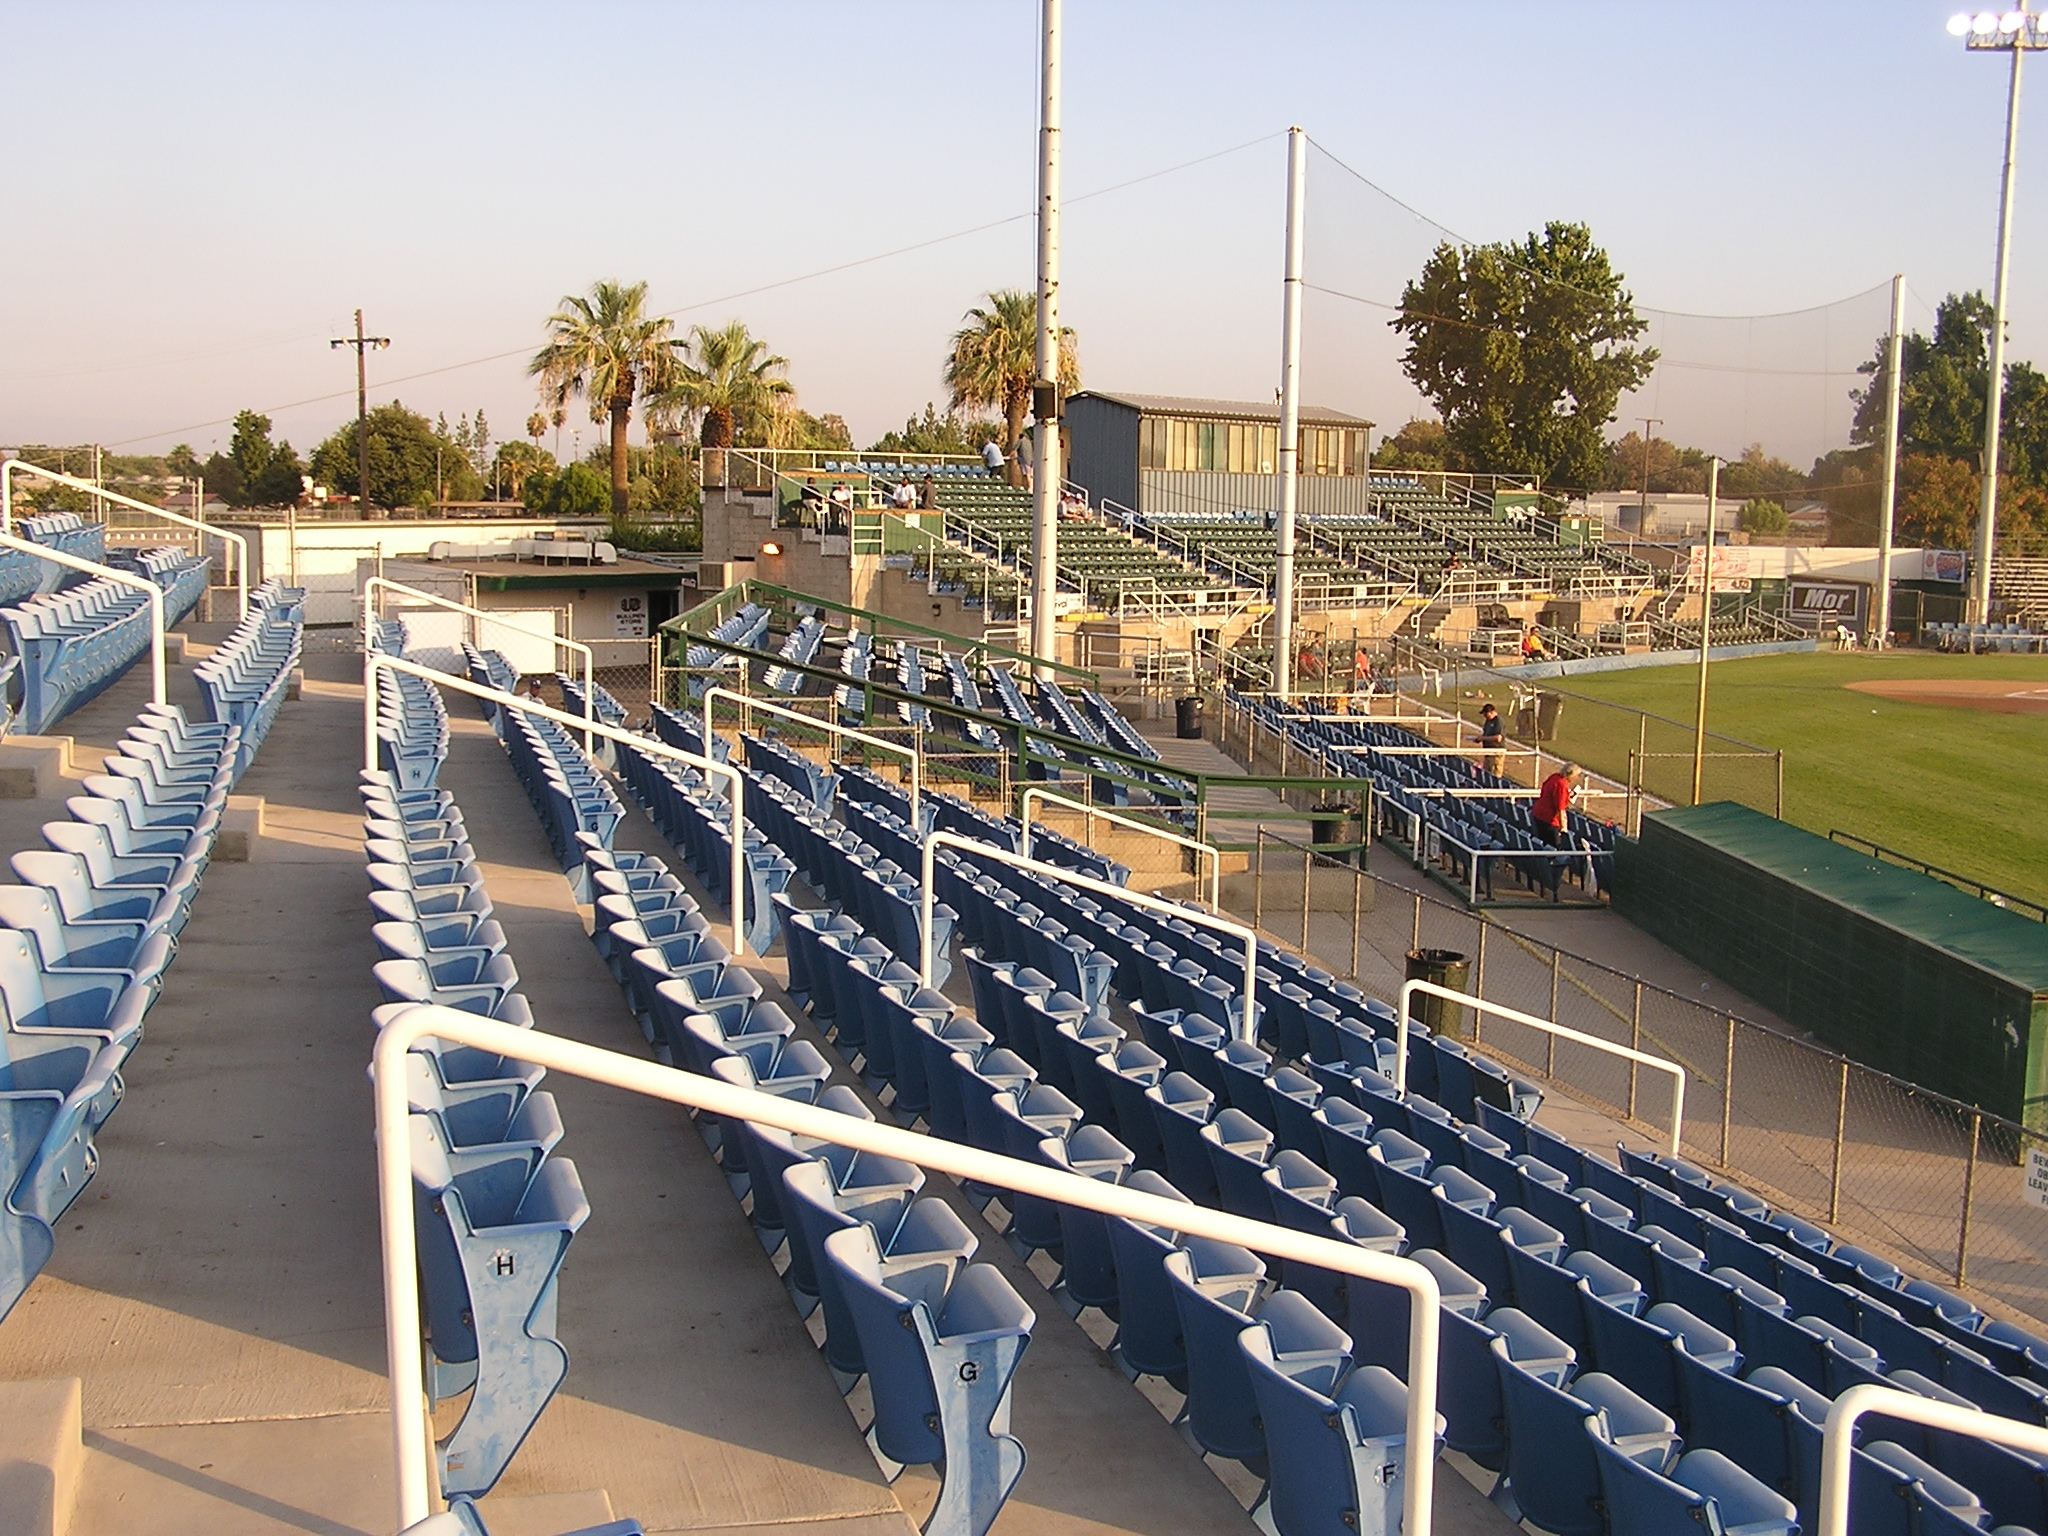 Seating at Sam Lynn Ballpark - Bakersfield, Ca.